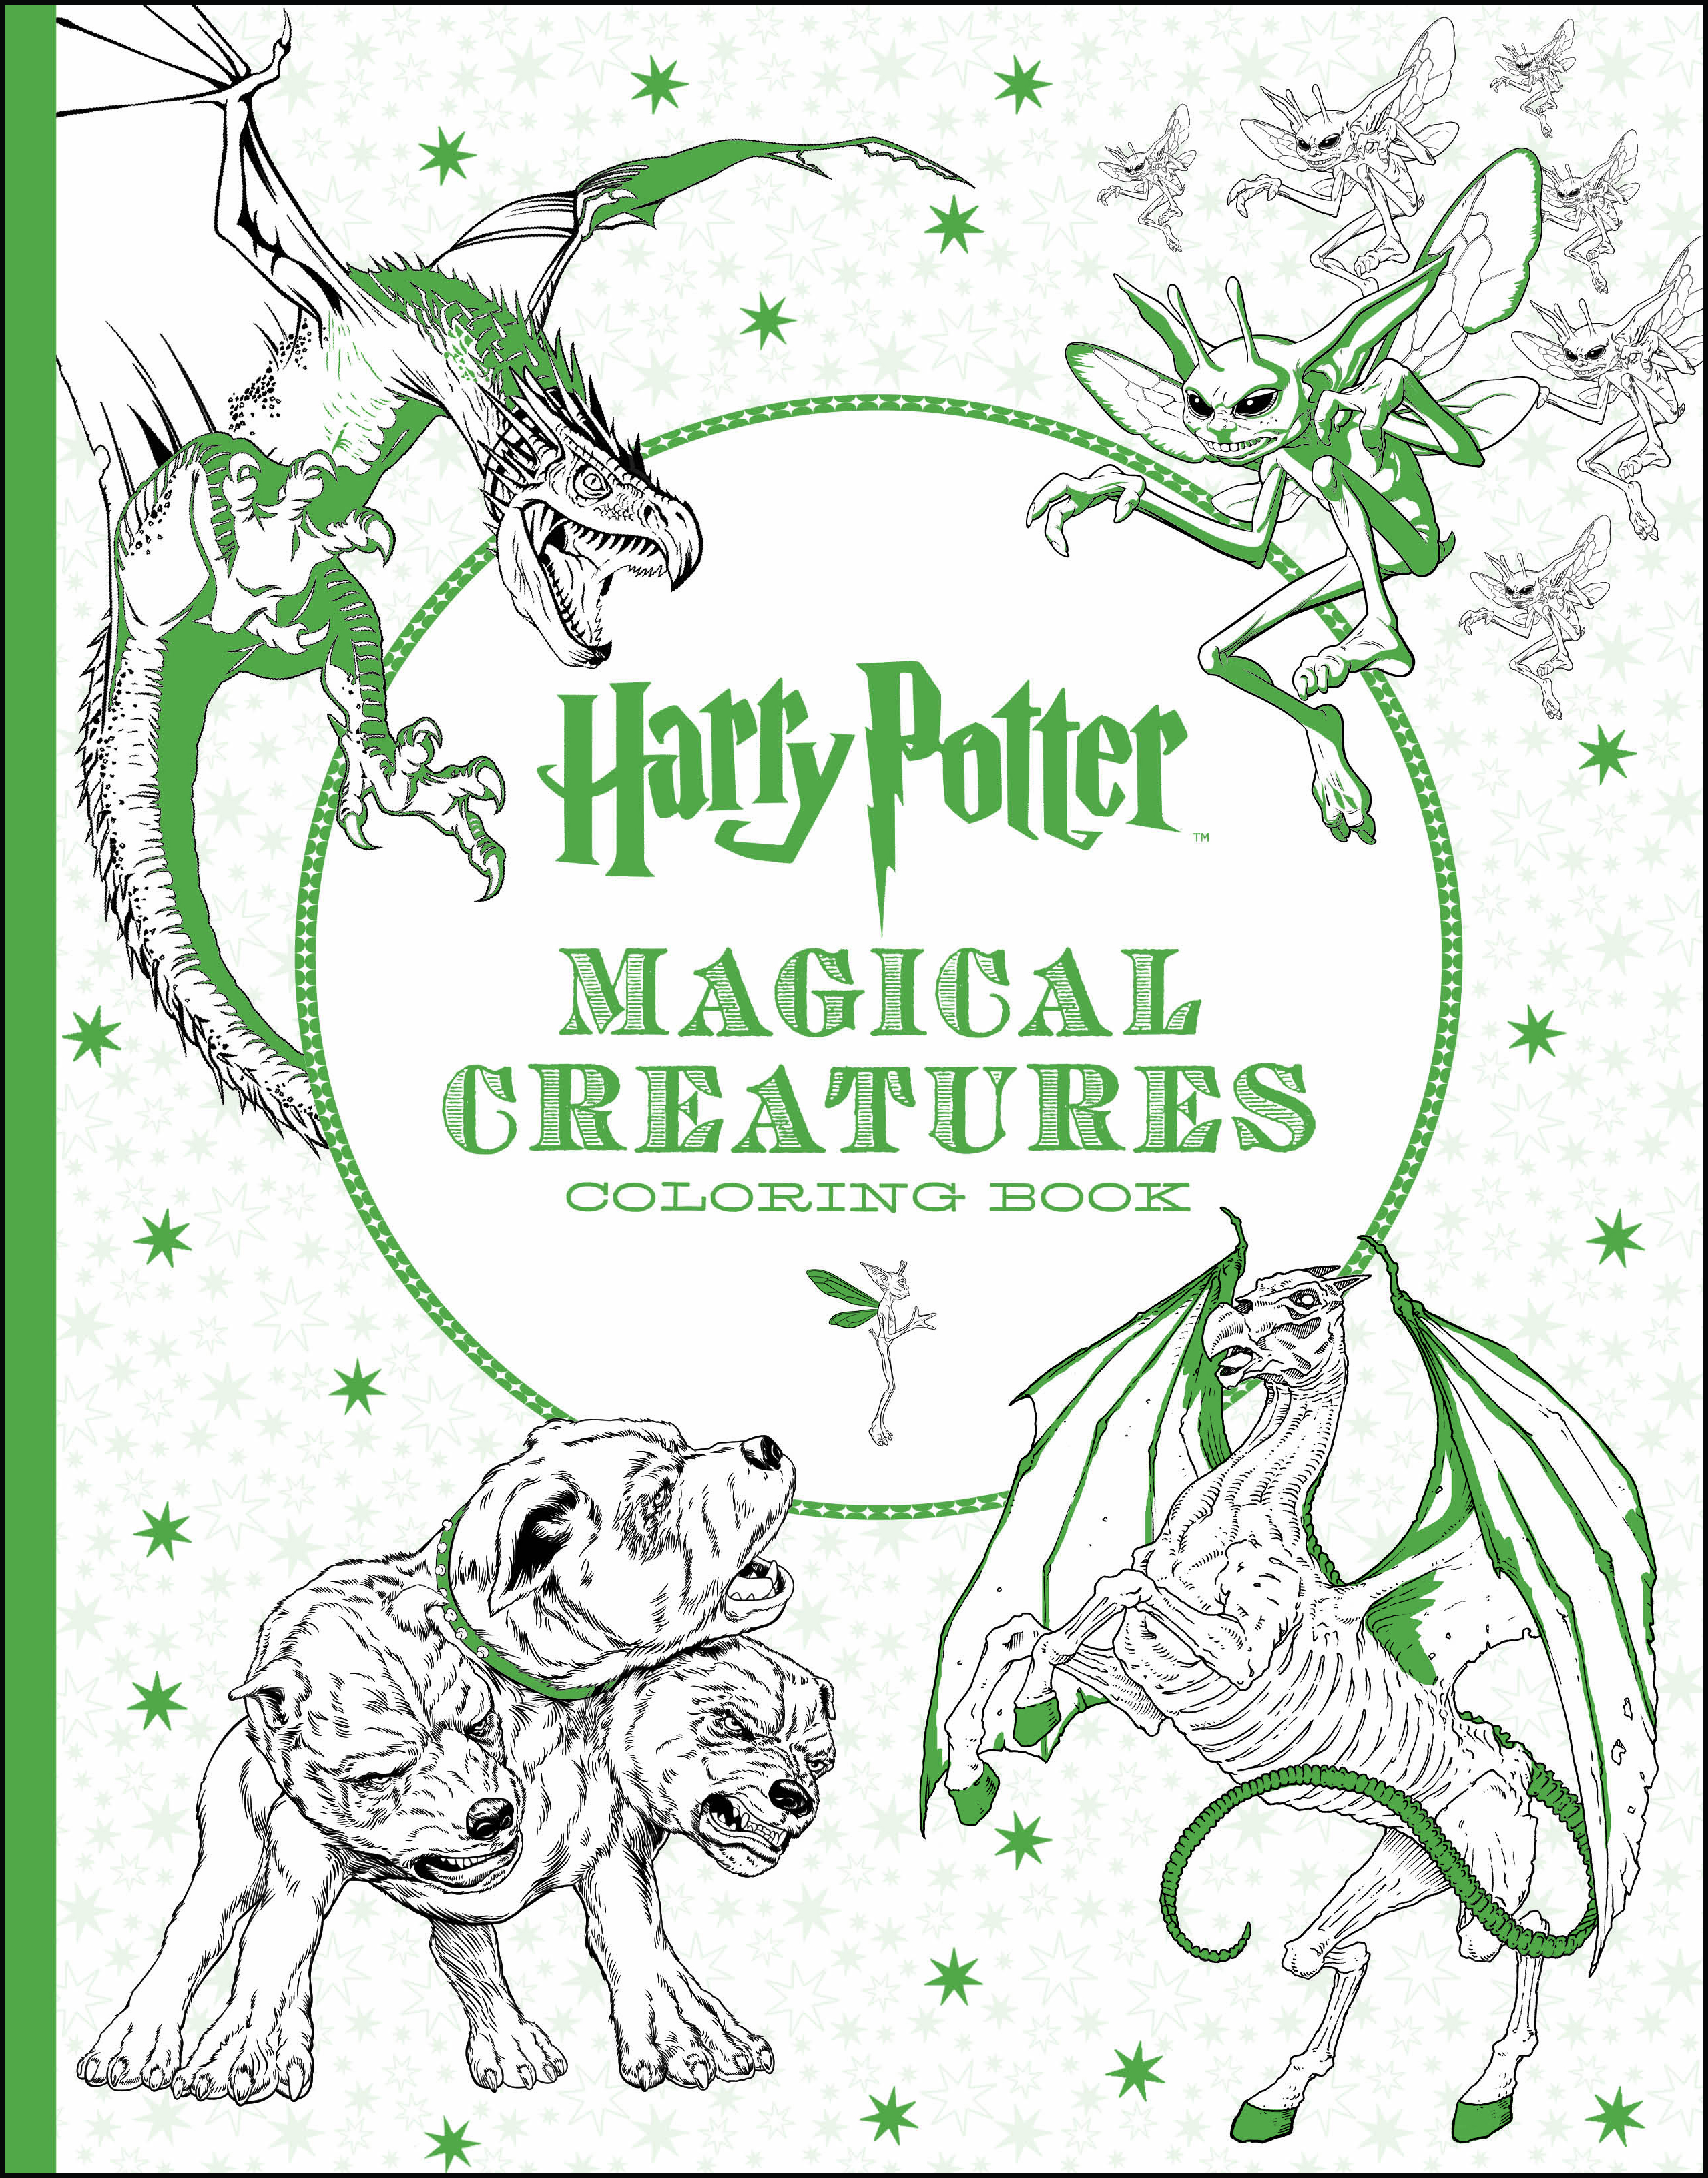 Harry Potter Characters And Places Coloring Book Walmart